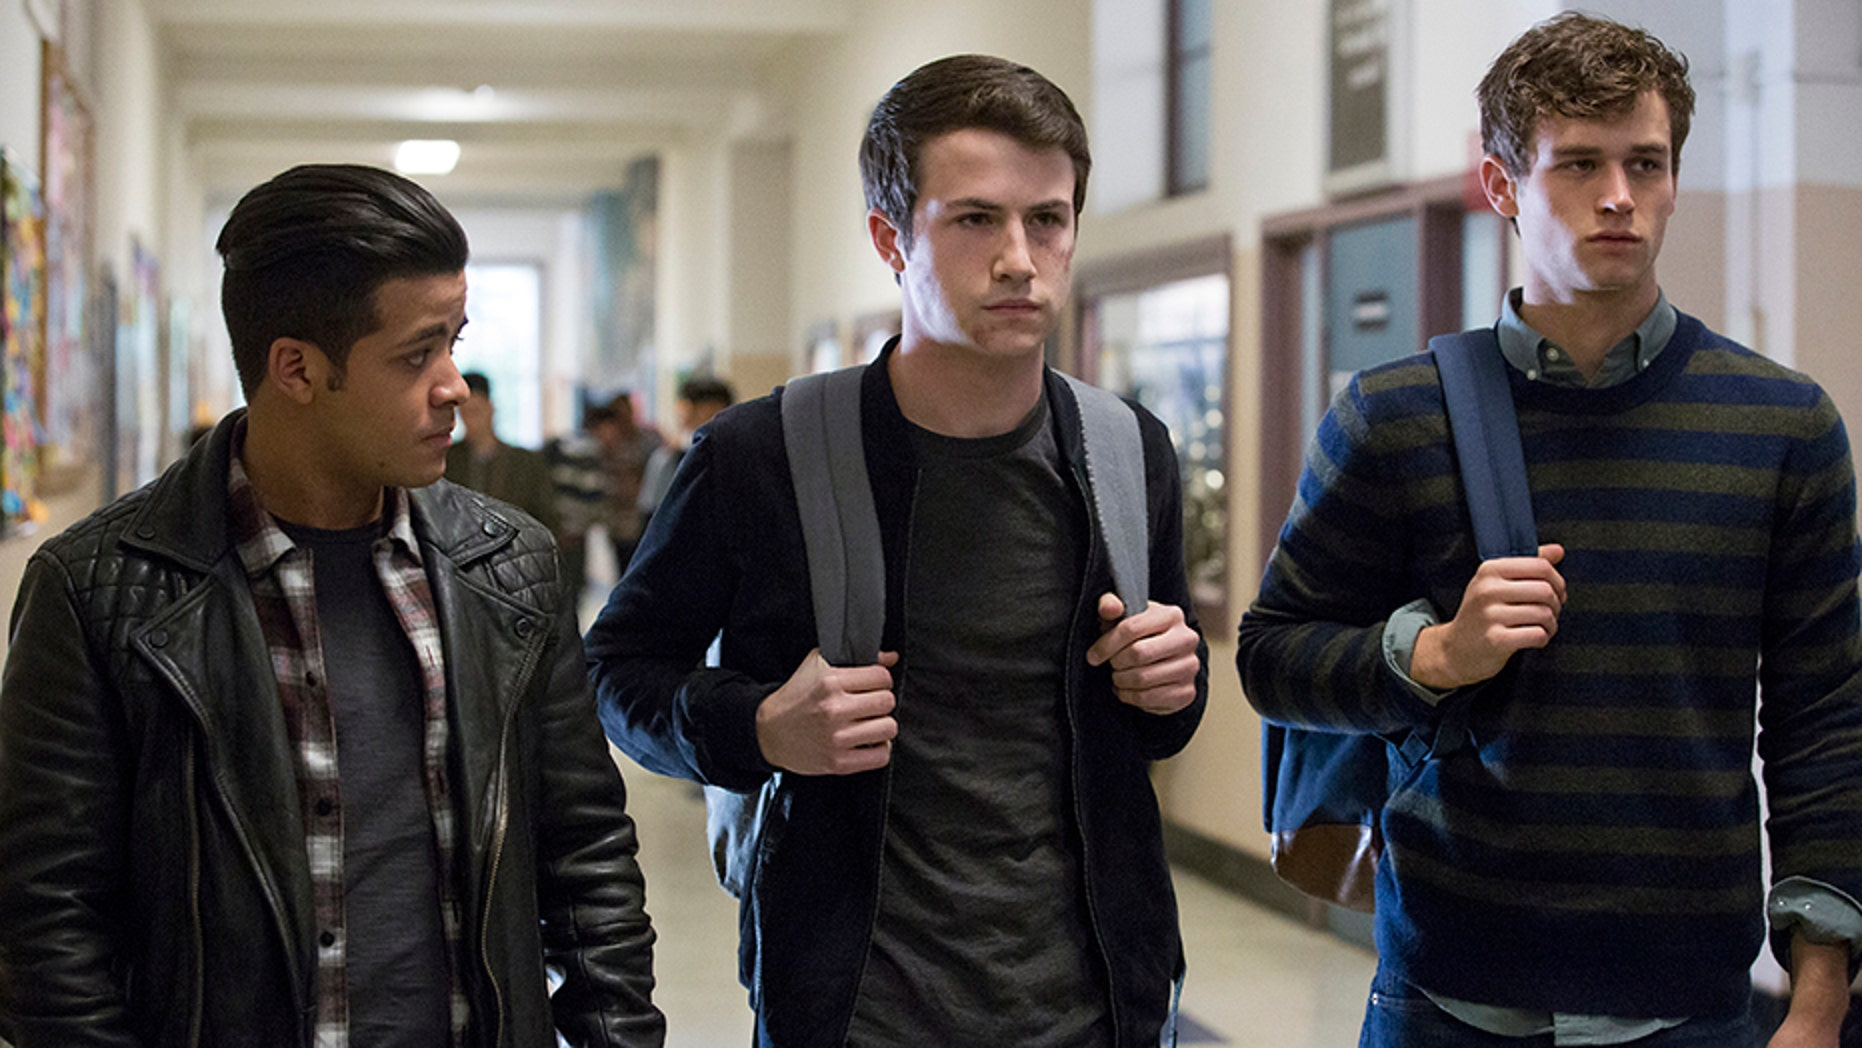 """This image released by Netflix shows, from left, Christian Navarro, Dylan Minnette and Brandon Flynn in """"13 Reasons Why."""""""